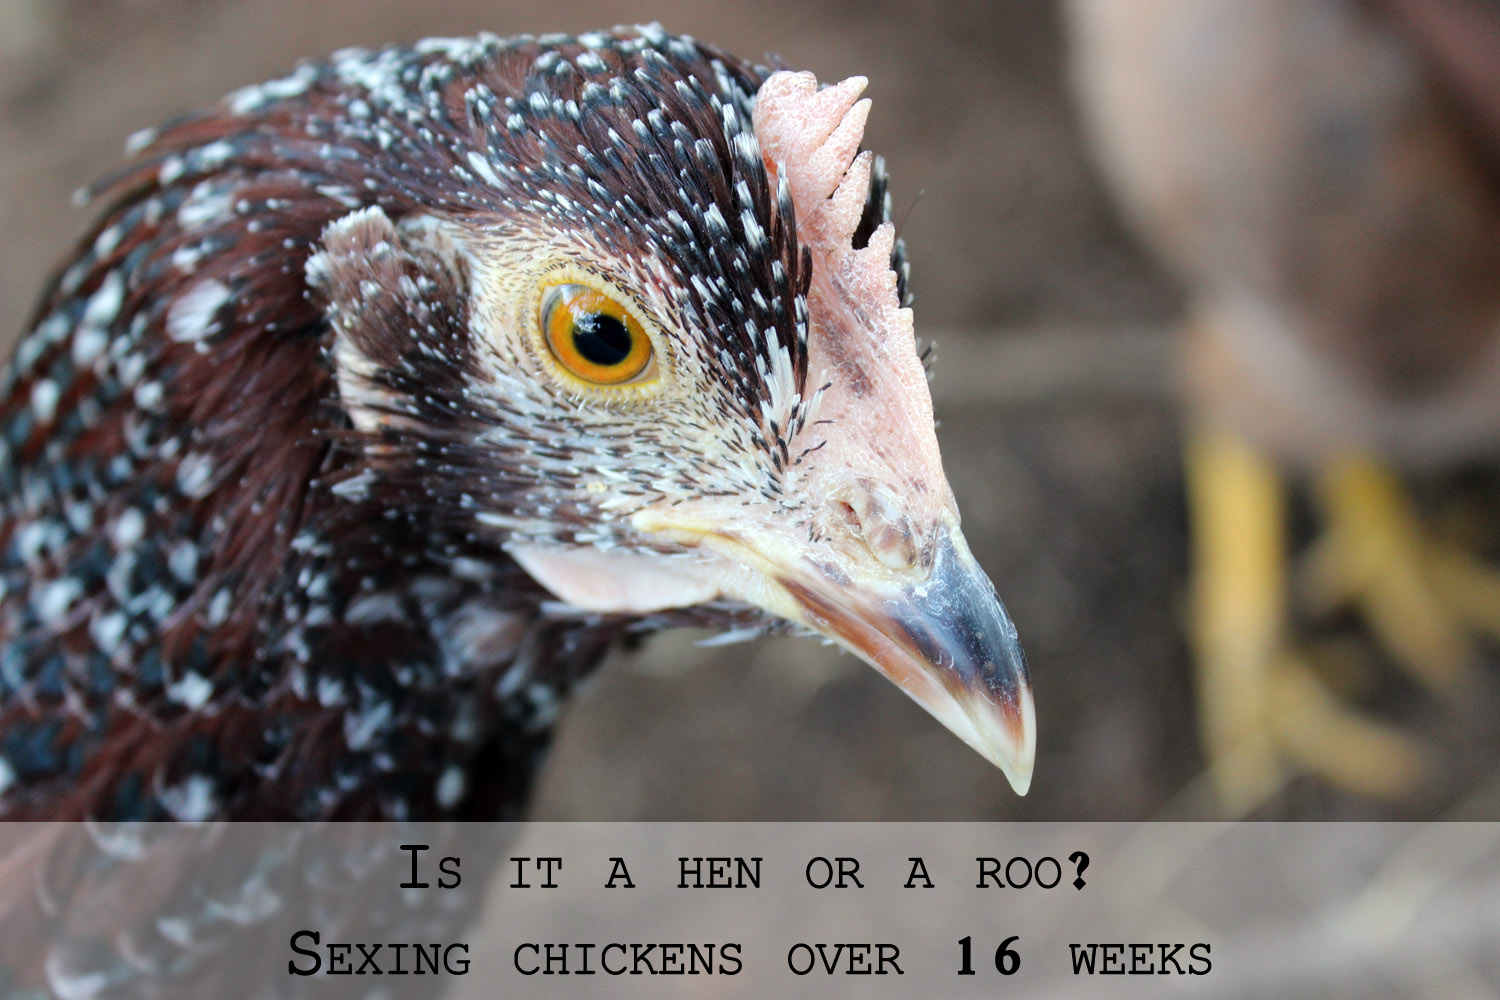 Sexing Chickens: Hen or Rooster?